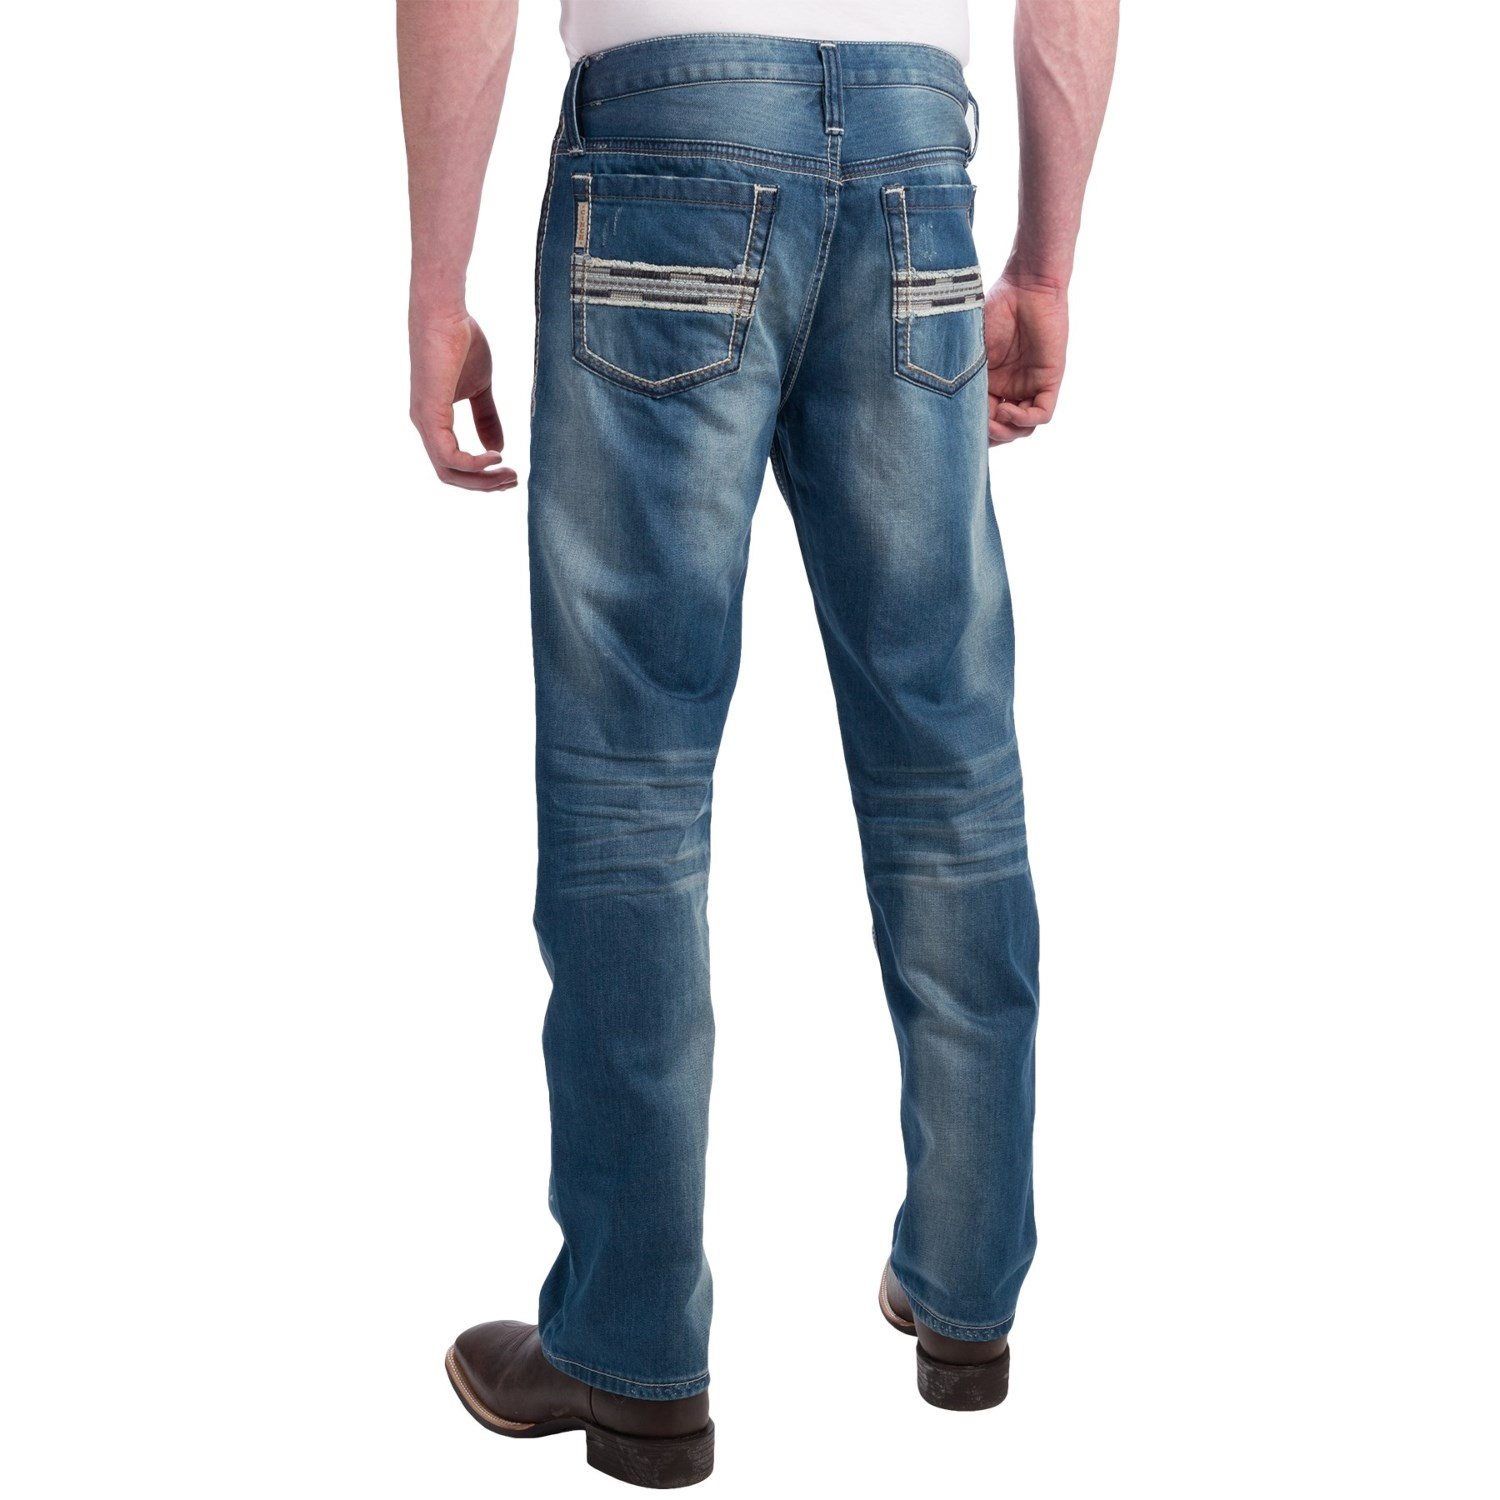 Cinch Ian Jeans For Men 9422m Save 70